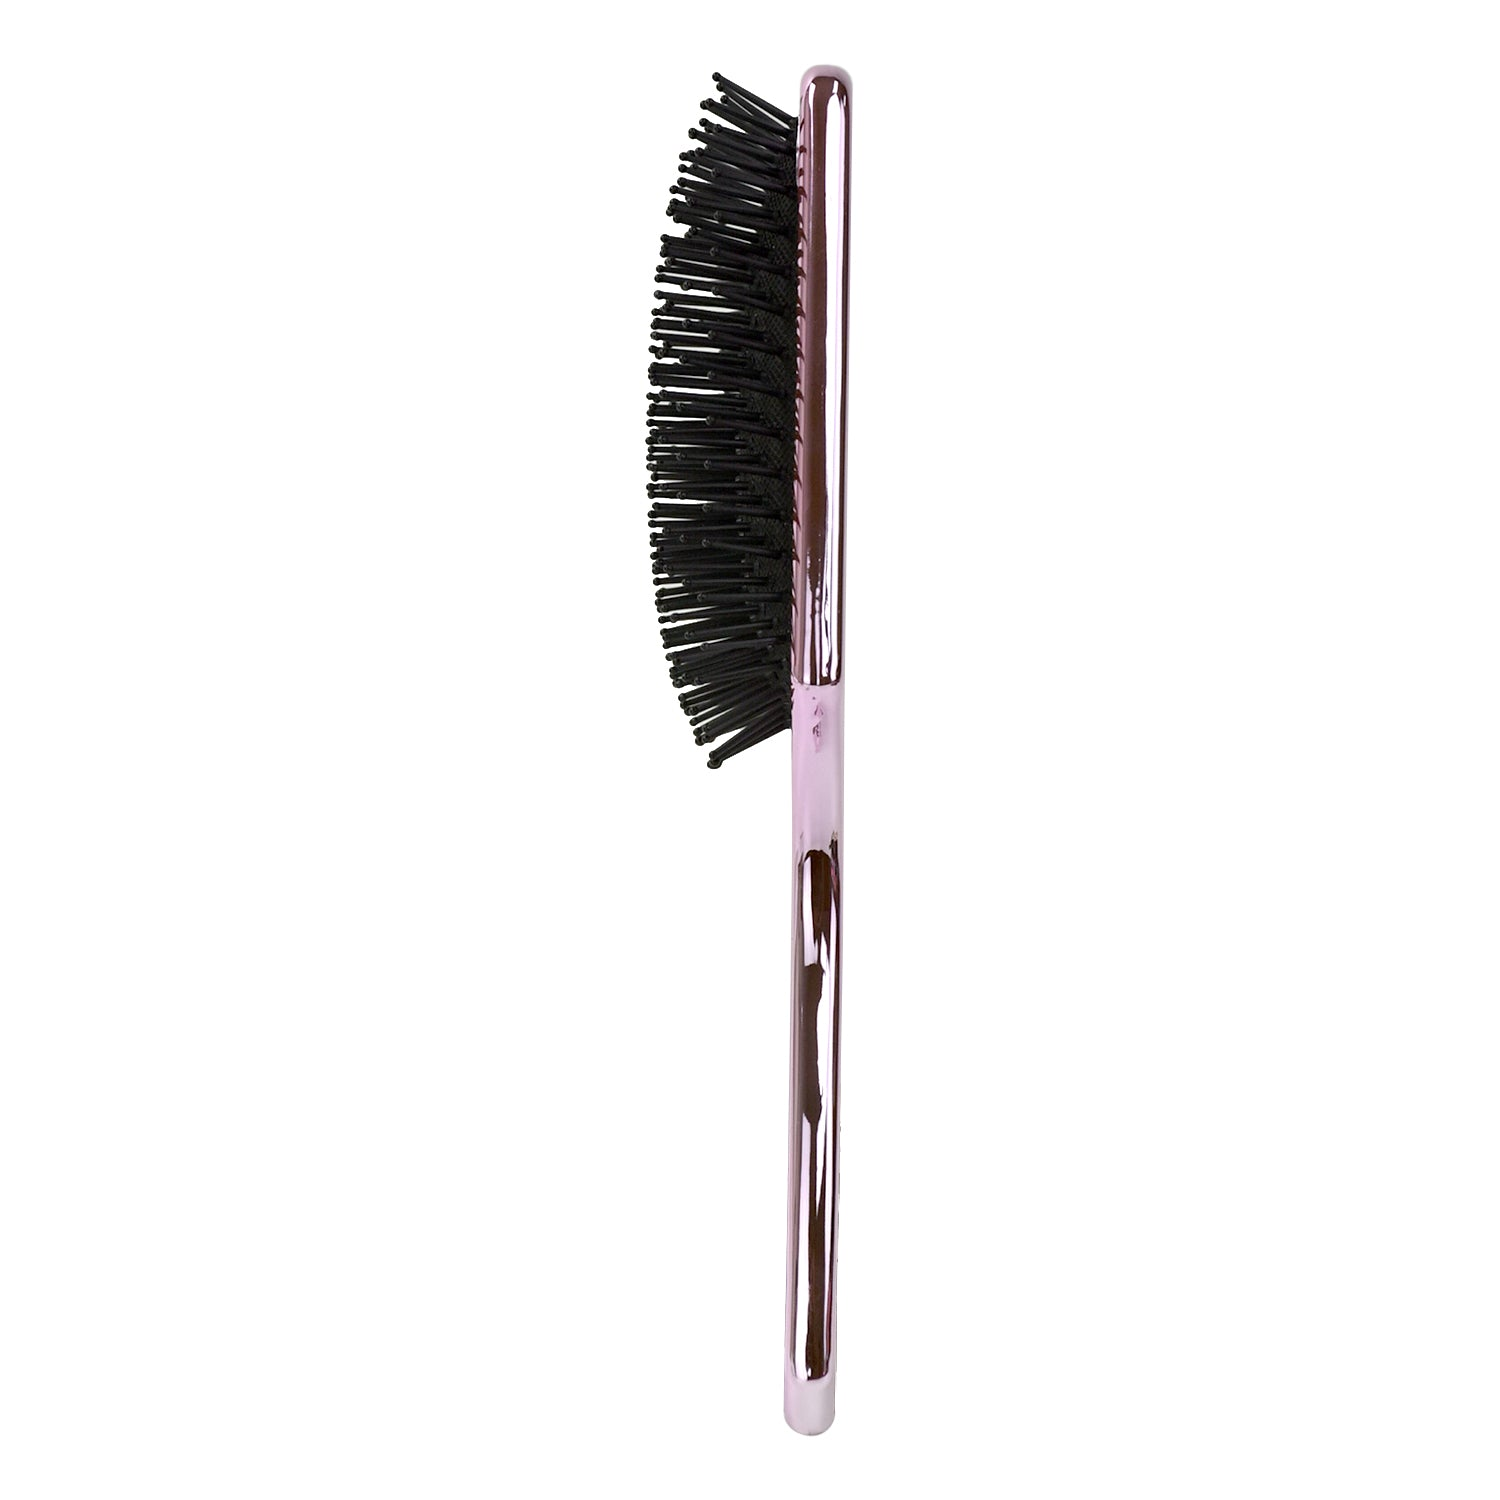 Celavi Professional Metallic Chrome Rectangular Paddle Brush (Available in Bronze, Silver and Lilac)